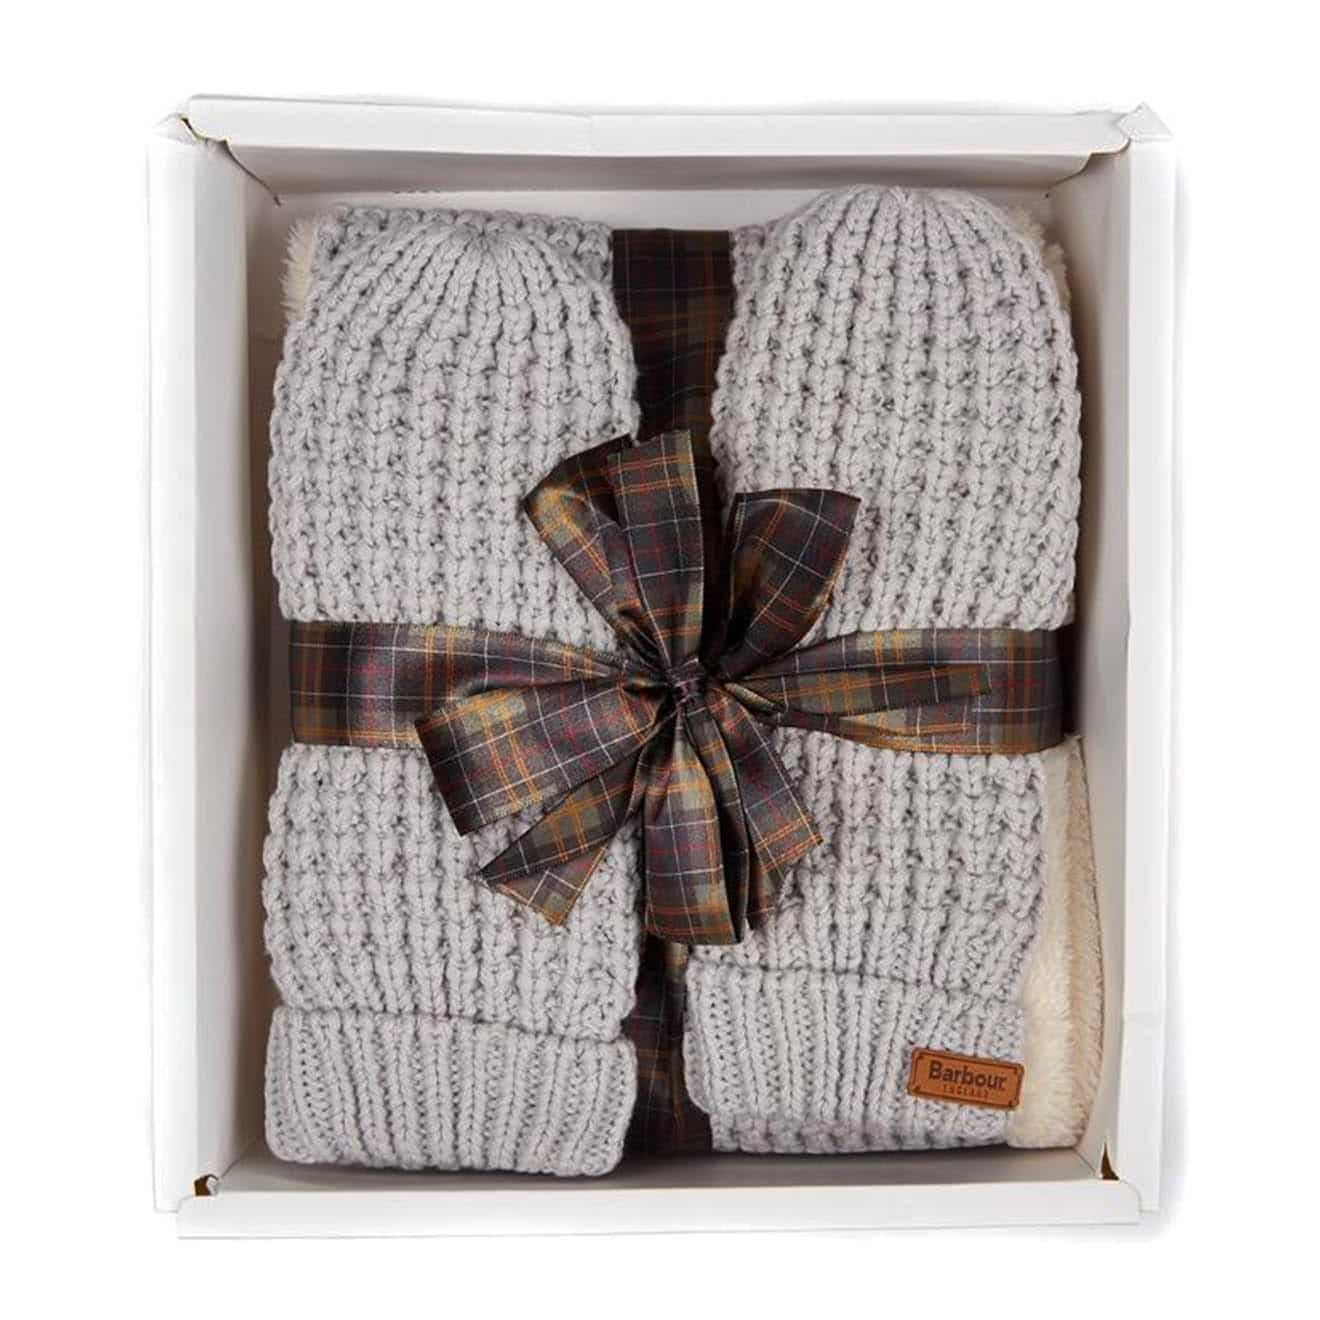 Barbour Womens Fleece Lined Snood / Mitten Set Ice White